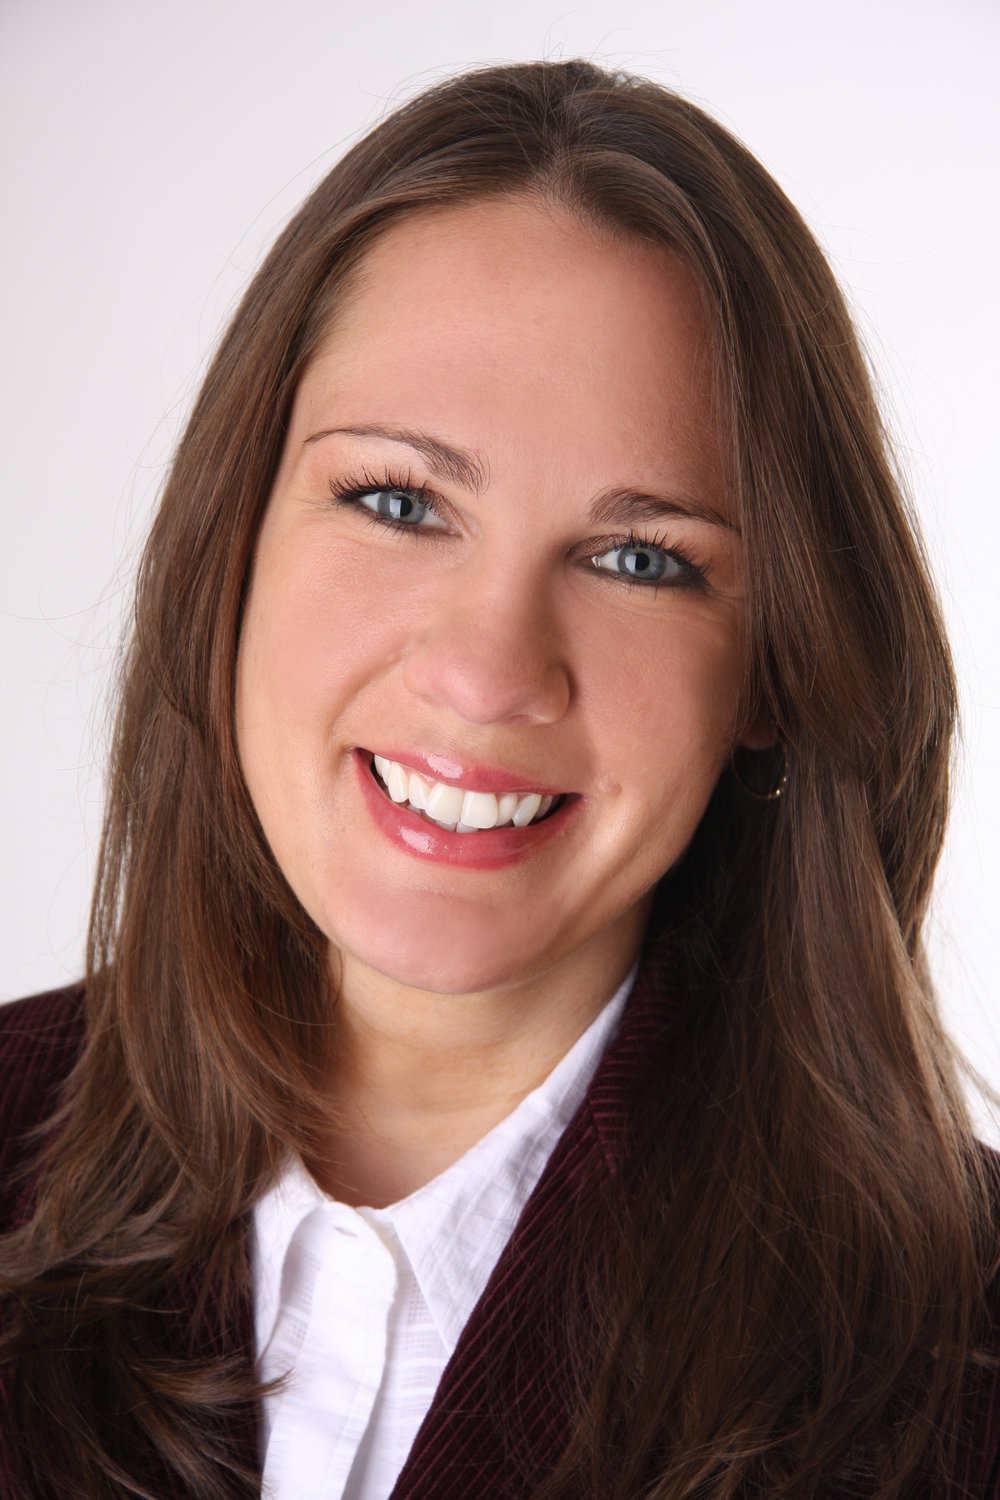 CAROLYN FUGERE - Carolyn Fugere began her career in real estate as a sales associate in Litchfield County, Connecticut, where she quickly became a rising star in the local market. Her firm's leadership team recognized her potential and soon offered her the opportunity to lead her brokerage as sales manager.Fast forward to today: With nearly 20 years in the real estate industry under her belt, Carolyn brings experience and expertise in managing, marketing and selling in suburban, urban and rural markets. From brokering bungalows to beachfront estates, and castles to co-ops, she has overseen upwards of $450 million in annual transactions.In addition to her extensive field experience, Carolyn has an impressive track record of building and leading some of the strongest real estate sales teams throughout Connecticut, New York and Massachusetts. She is a recent two time William Pitt-Julia B. Fee Sotheby's International Realty Manager of the Year award recipient, an honor she received for her performance as a top recruiter with the firm. Her skill set on this front extends to acquisitions, large team affiliations and opening brokerages in new markets.